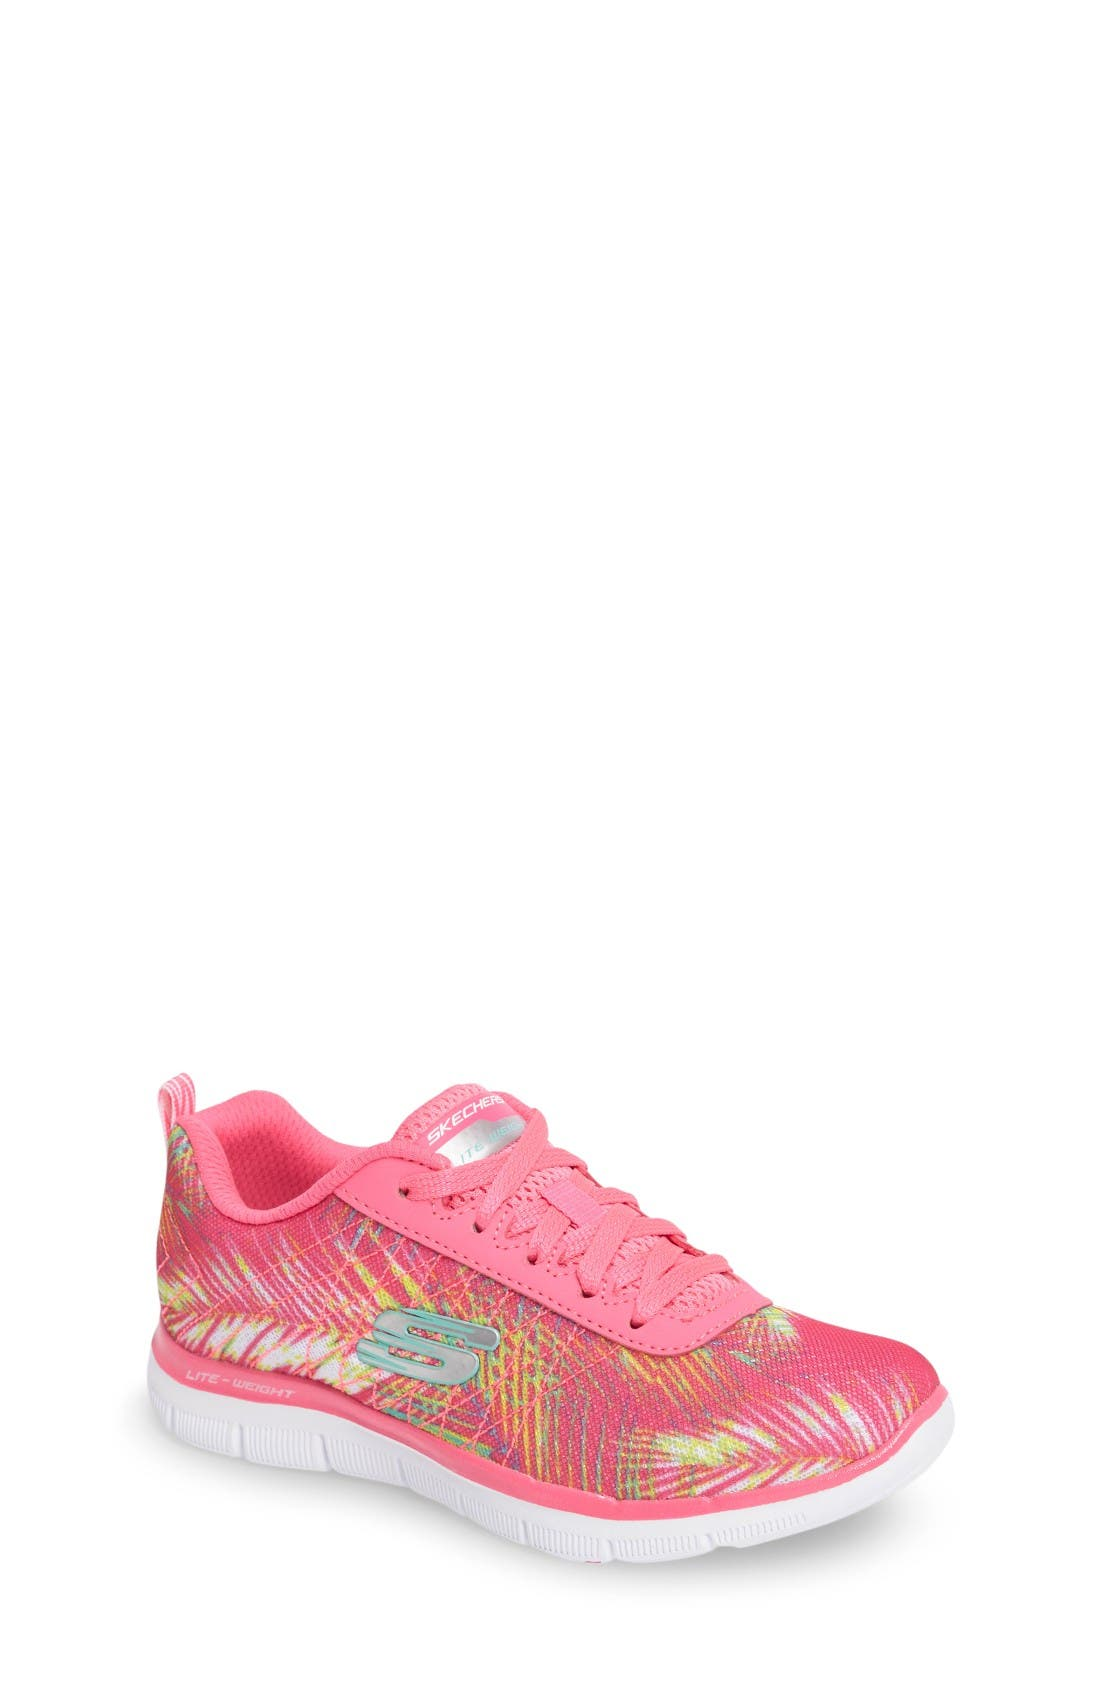 SKECHERS Skech Appeal 2.0 Tropical Breeze Sneaker (Toddler, Little Kid & Big Kid)